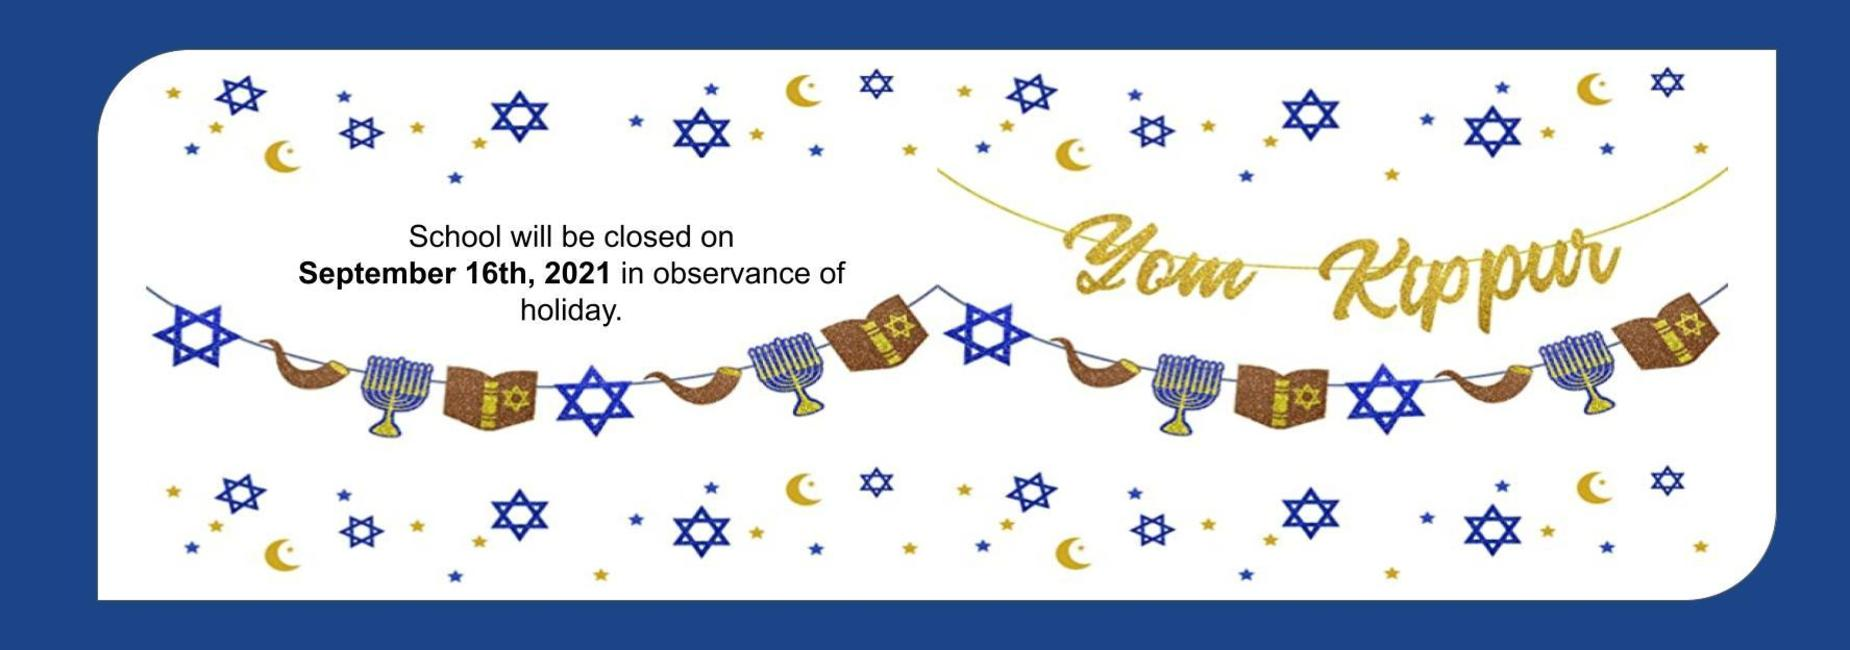 School will be closed on  September 16th, 2021 in observance of holiday. Yom Kippur